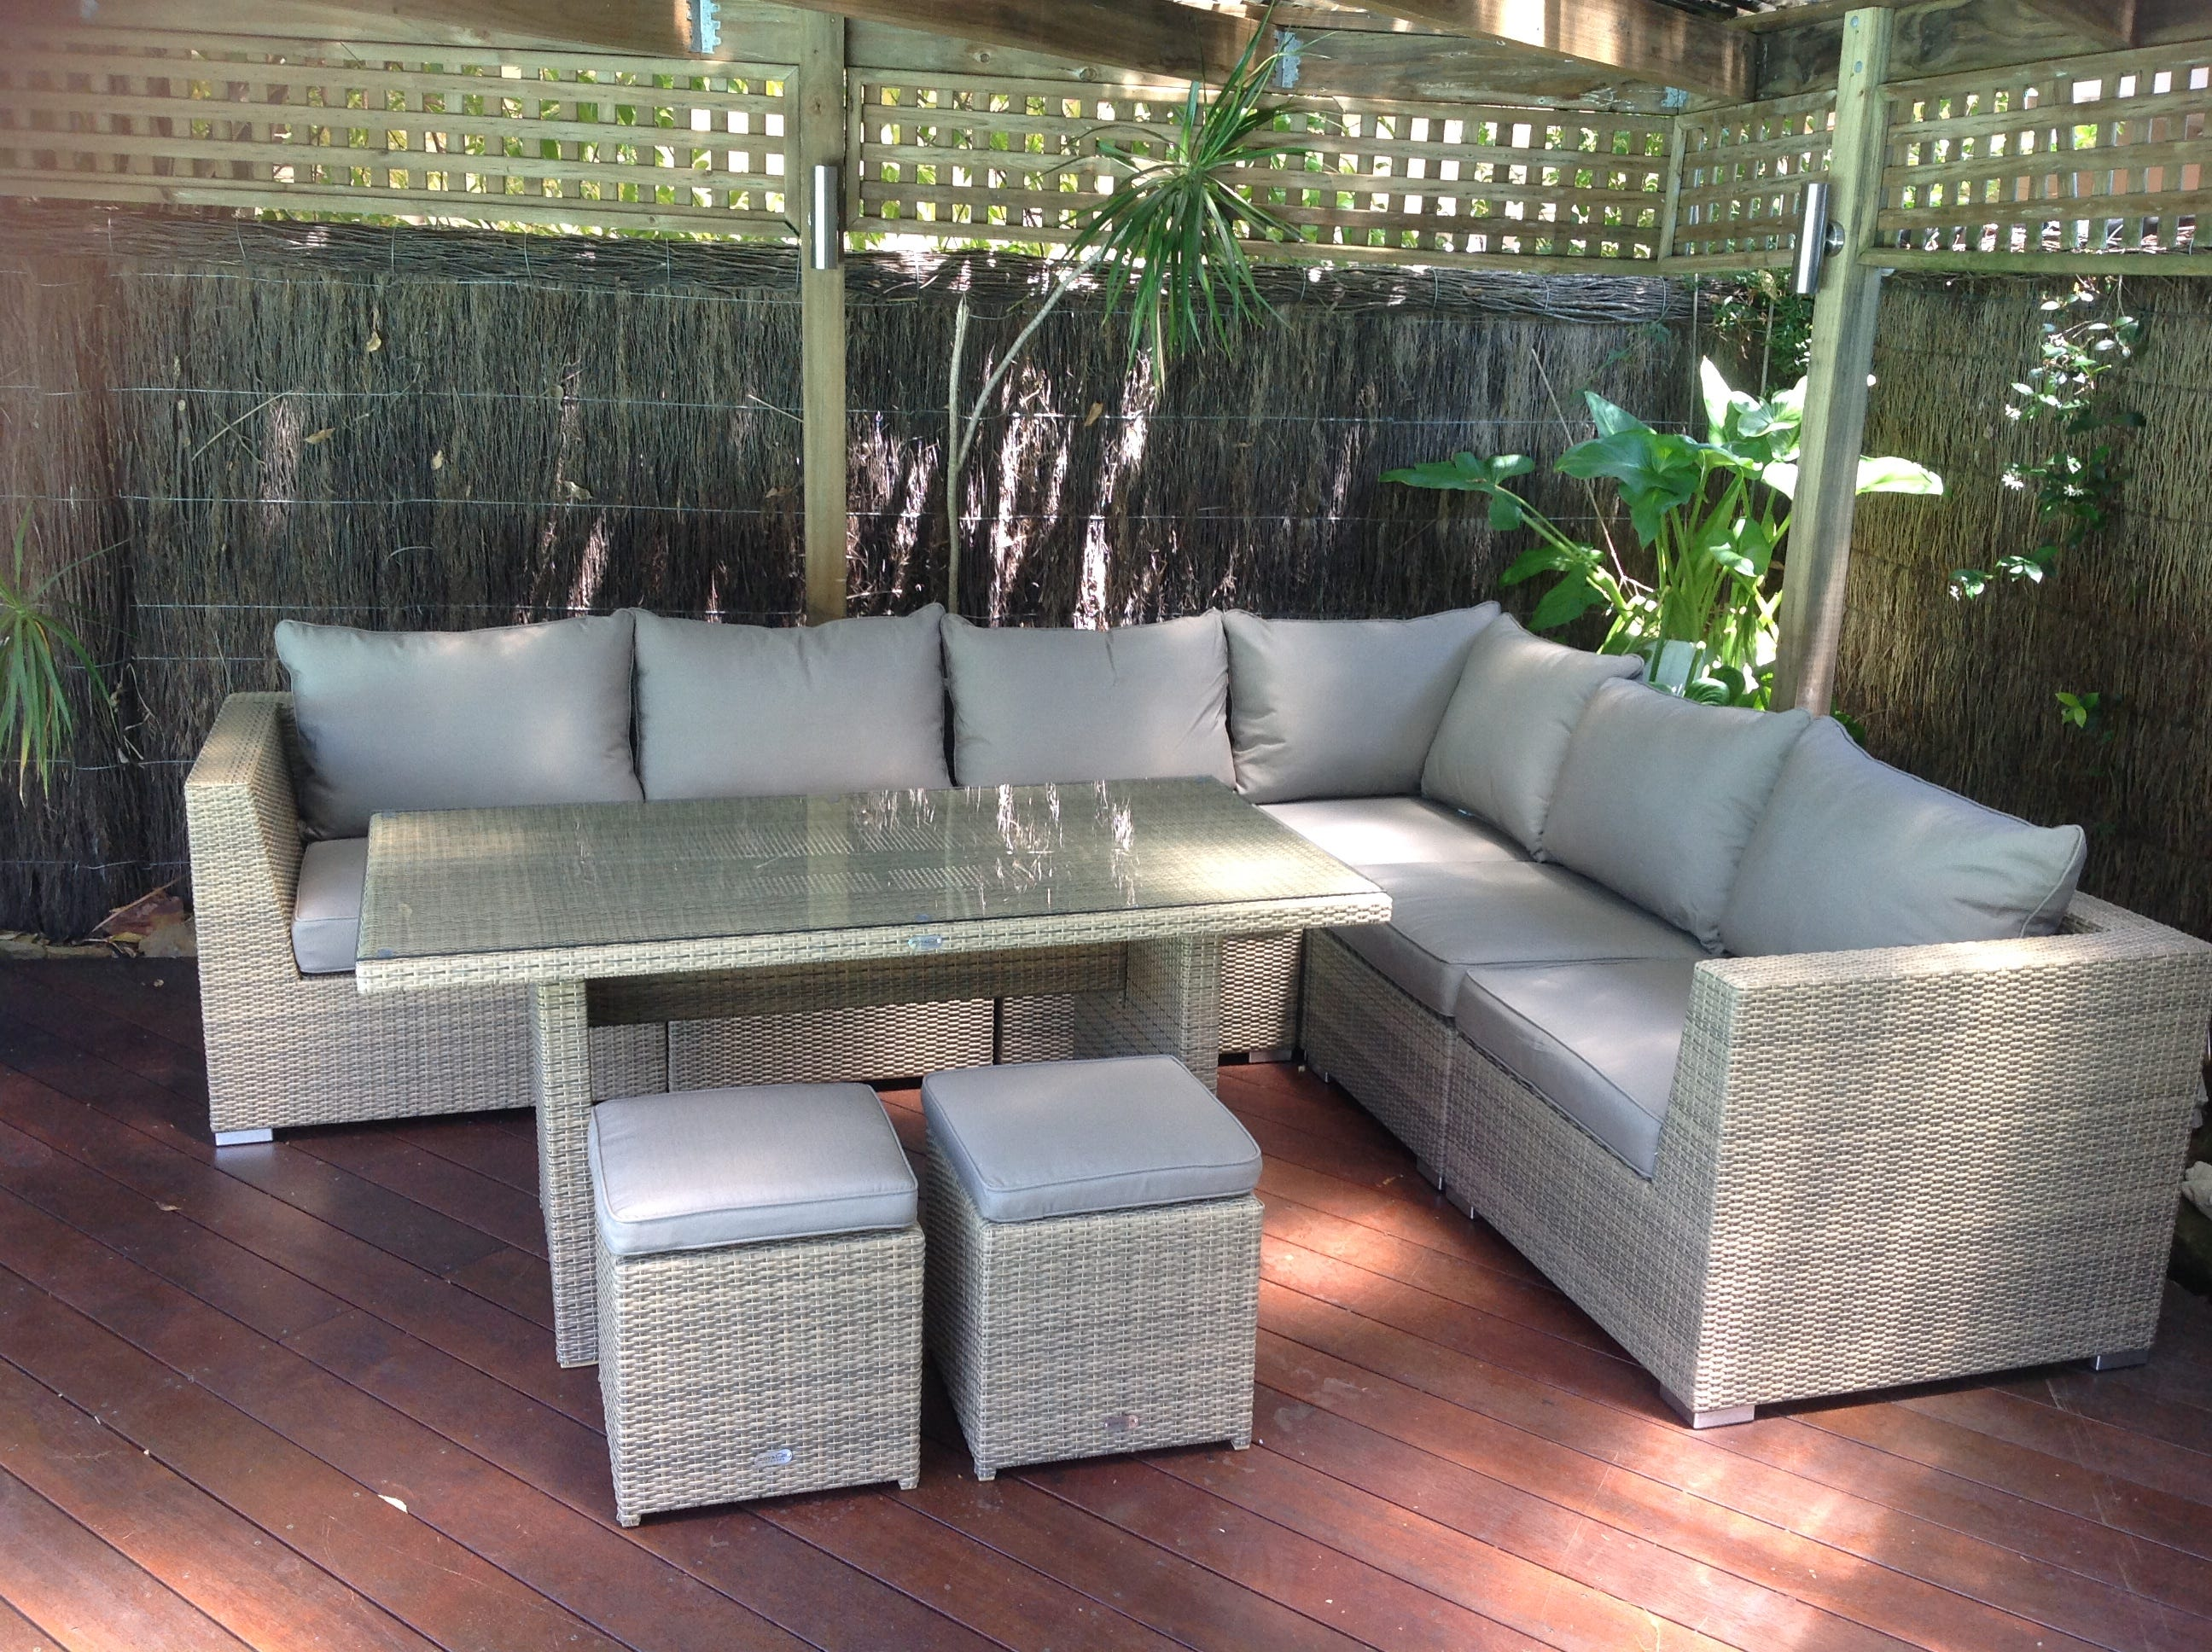 Outdoor furniture evolution dining out in comfort for Exterior furniture